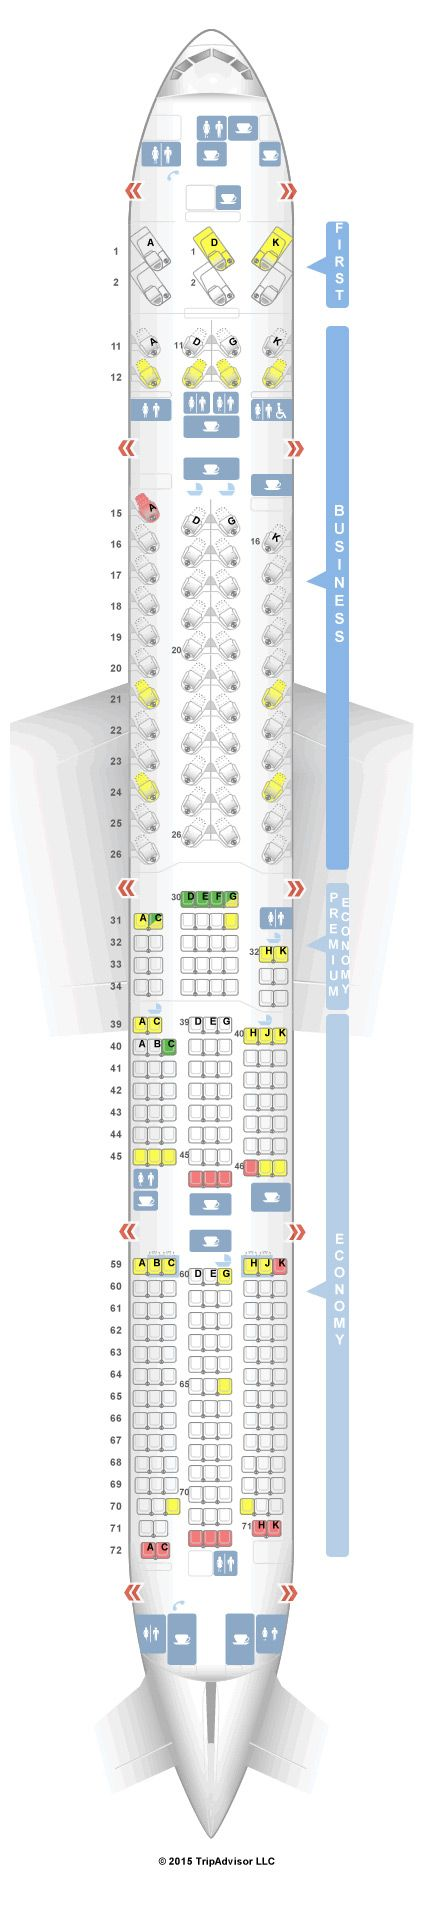 seatguru seat map cathay pacific boeing 777 300er 77h four class [ 425 x 1912 Pixel ]